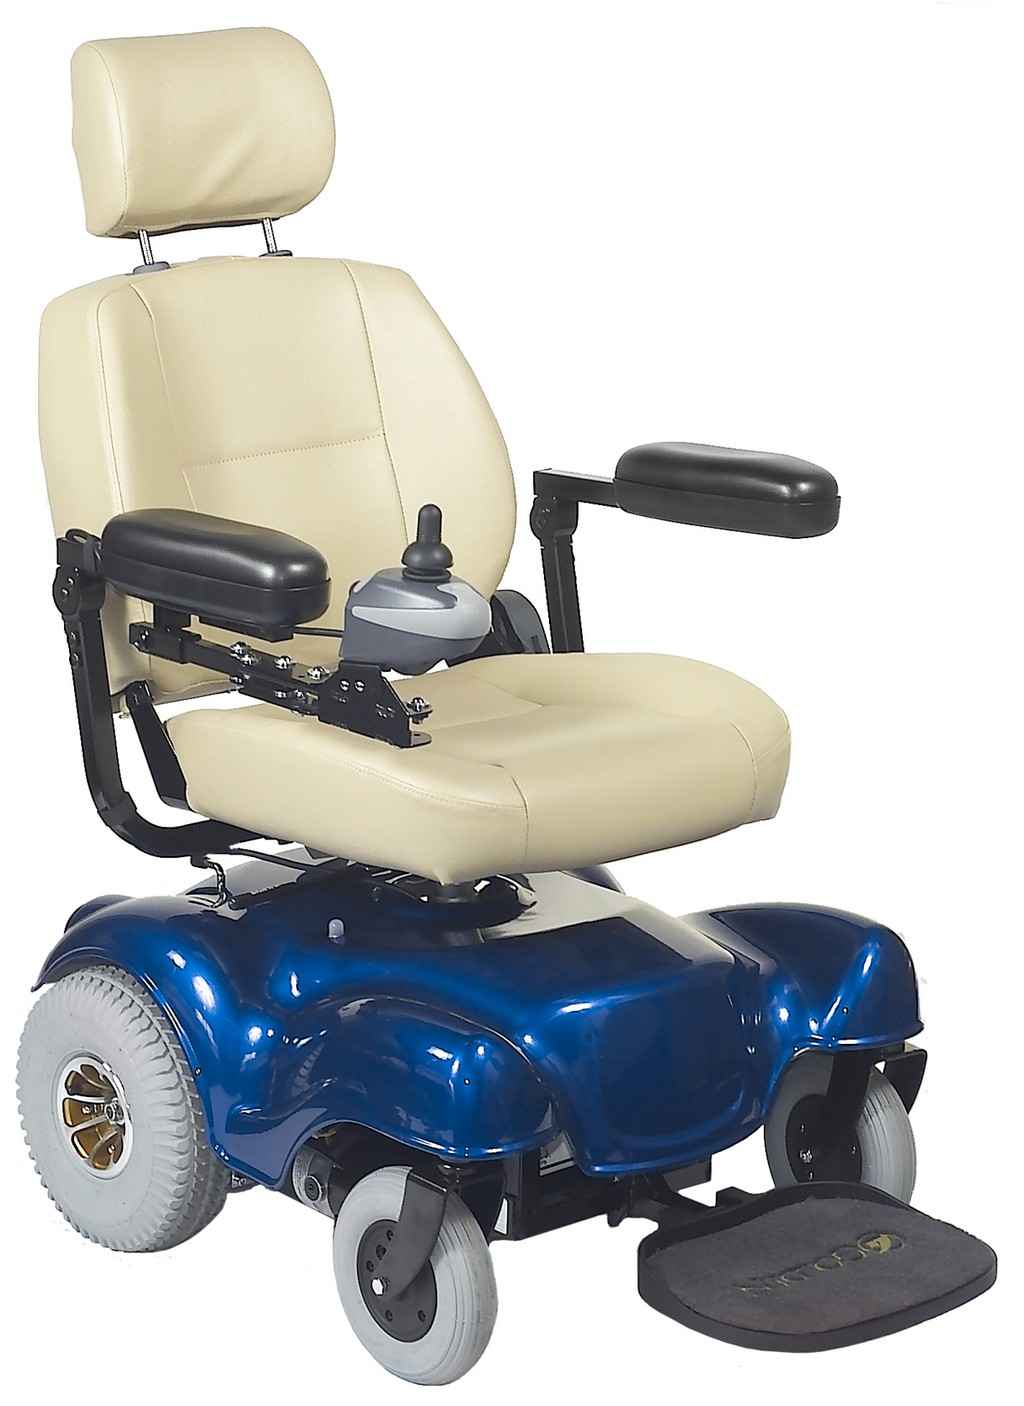 electric wheelchair rental, invacare electric wheelchair, pride power wheelchairs, power wheel chairs scooters